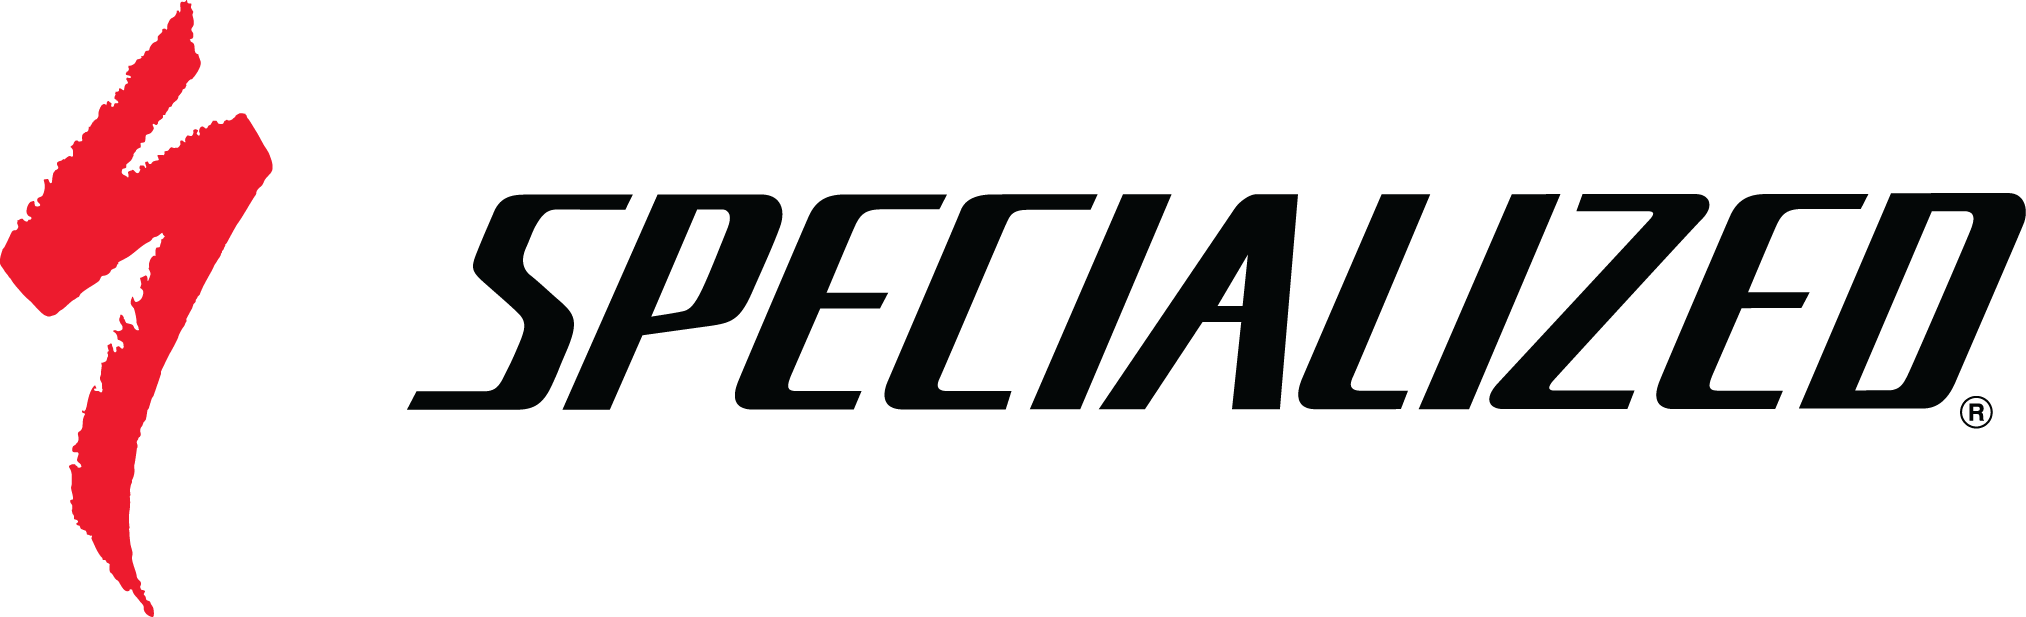 Specialized red S black logotype